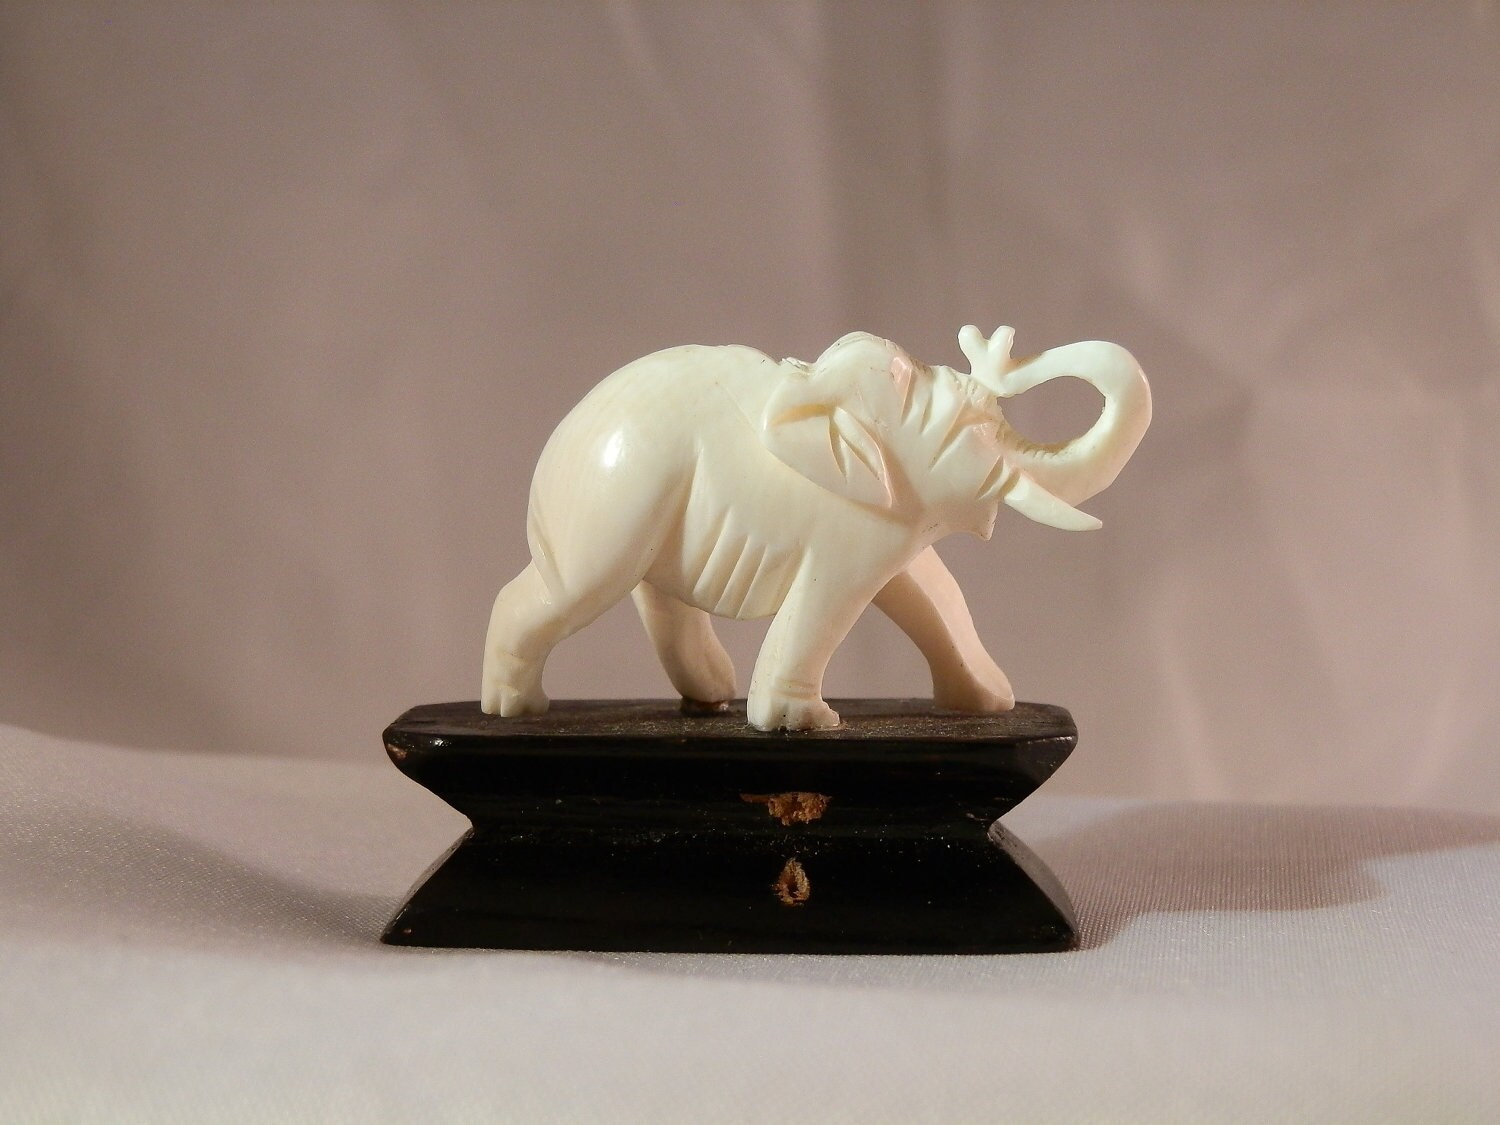 Pre Ban Ivory Elephant Carving On Attached Stand 39x32x12mm